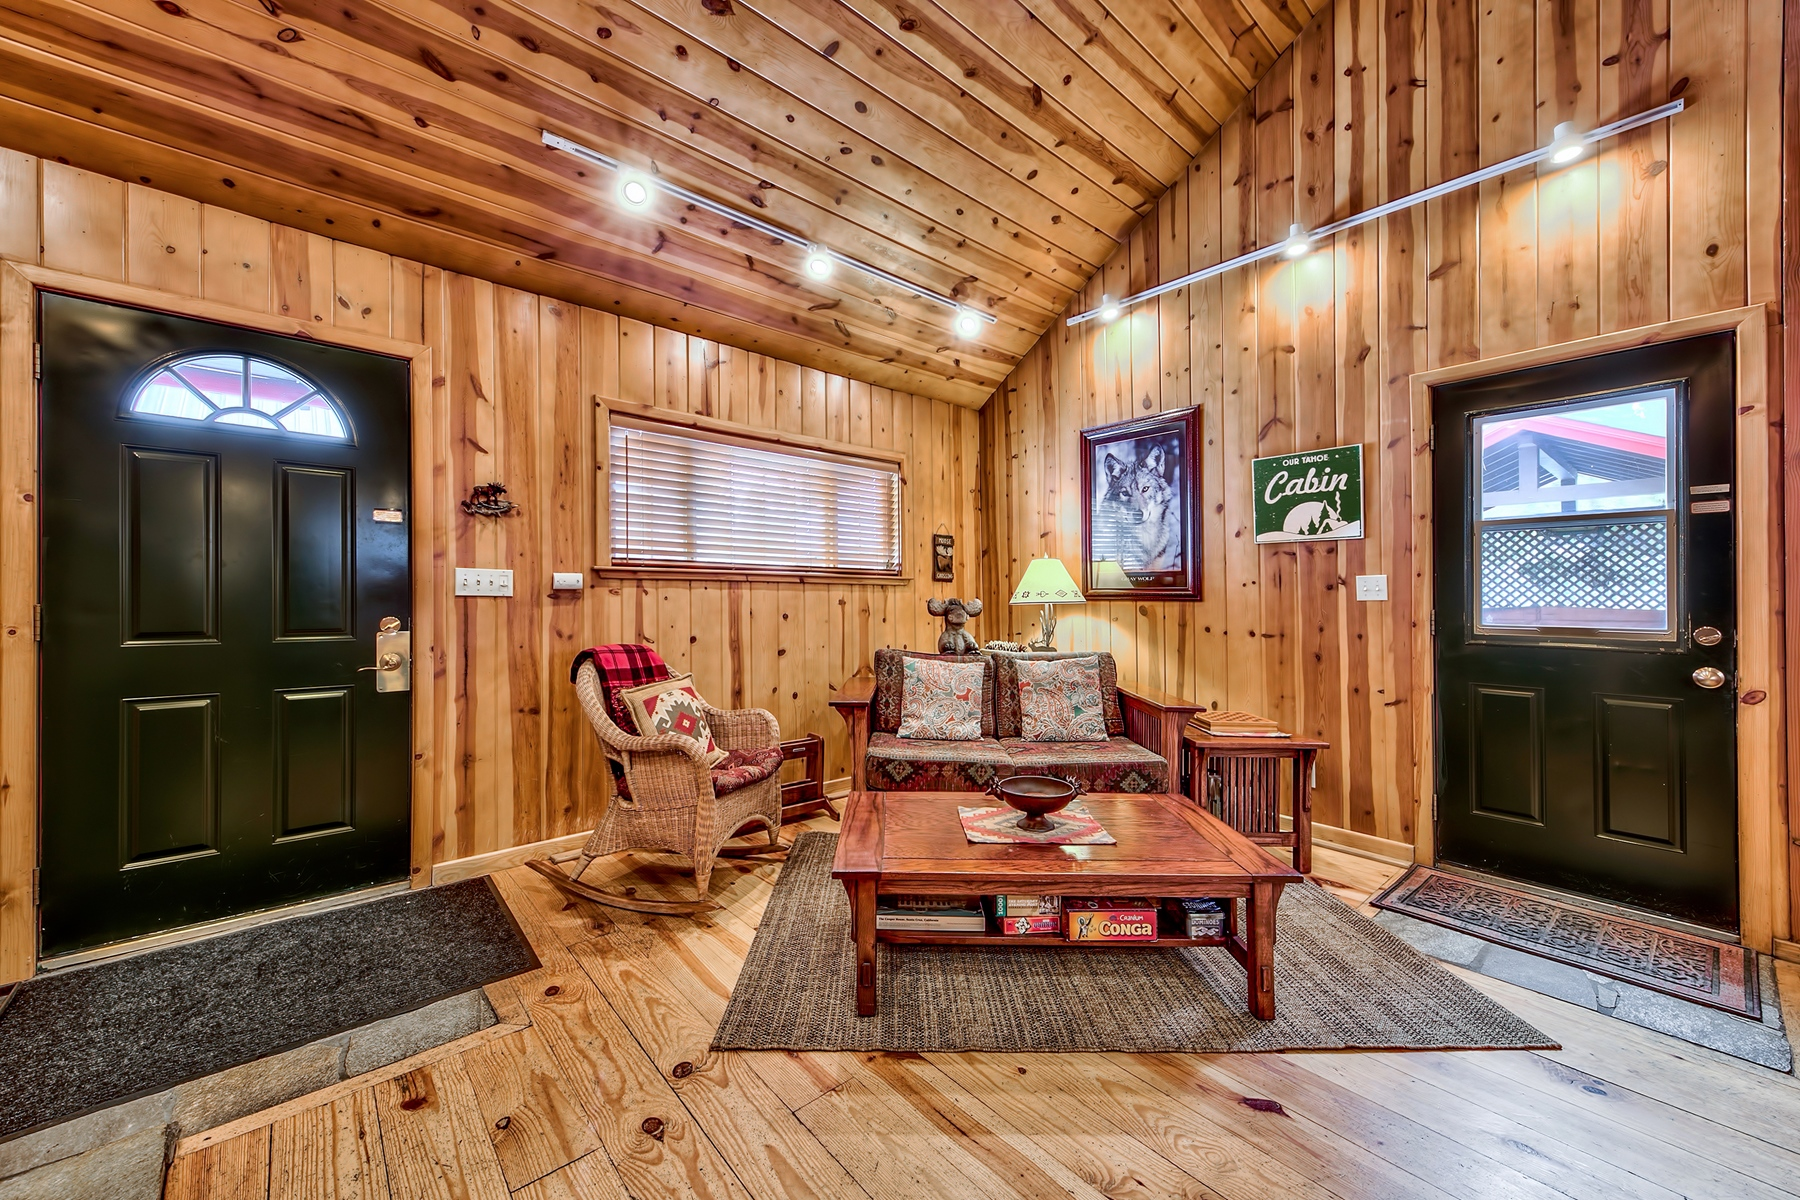 Additional photo for property listing at 1128 Craig Avenue, South Lake Tahoe, CA 96150 1128 Craig Avenue South Lake Tahoe, California 96150 United States